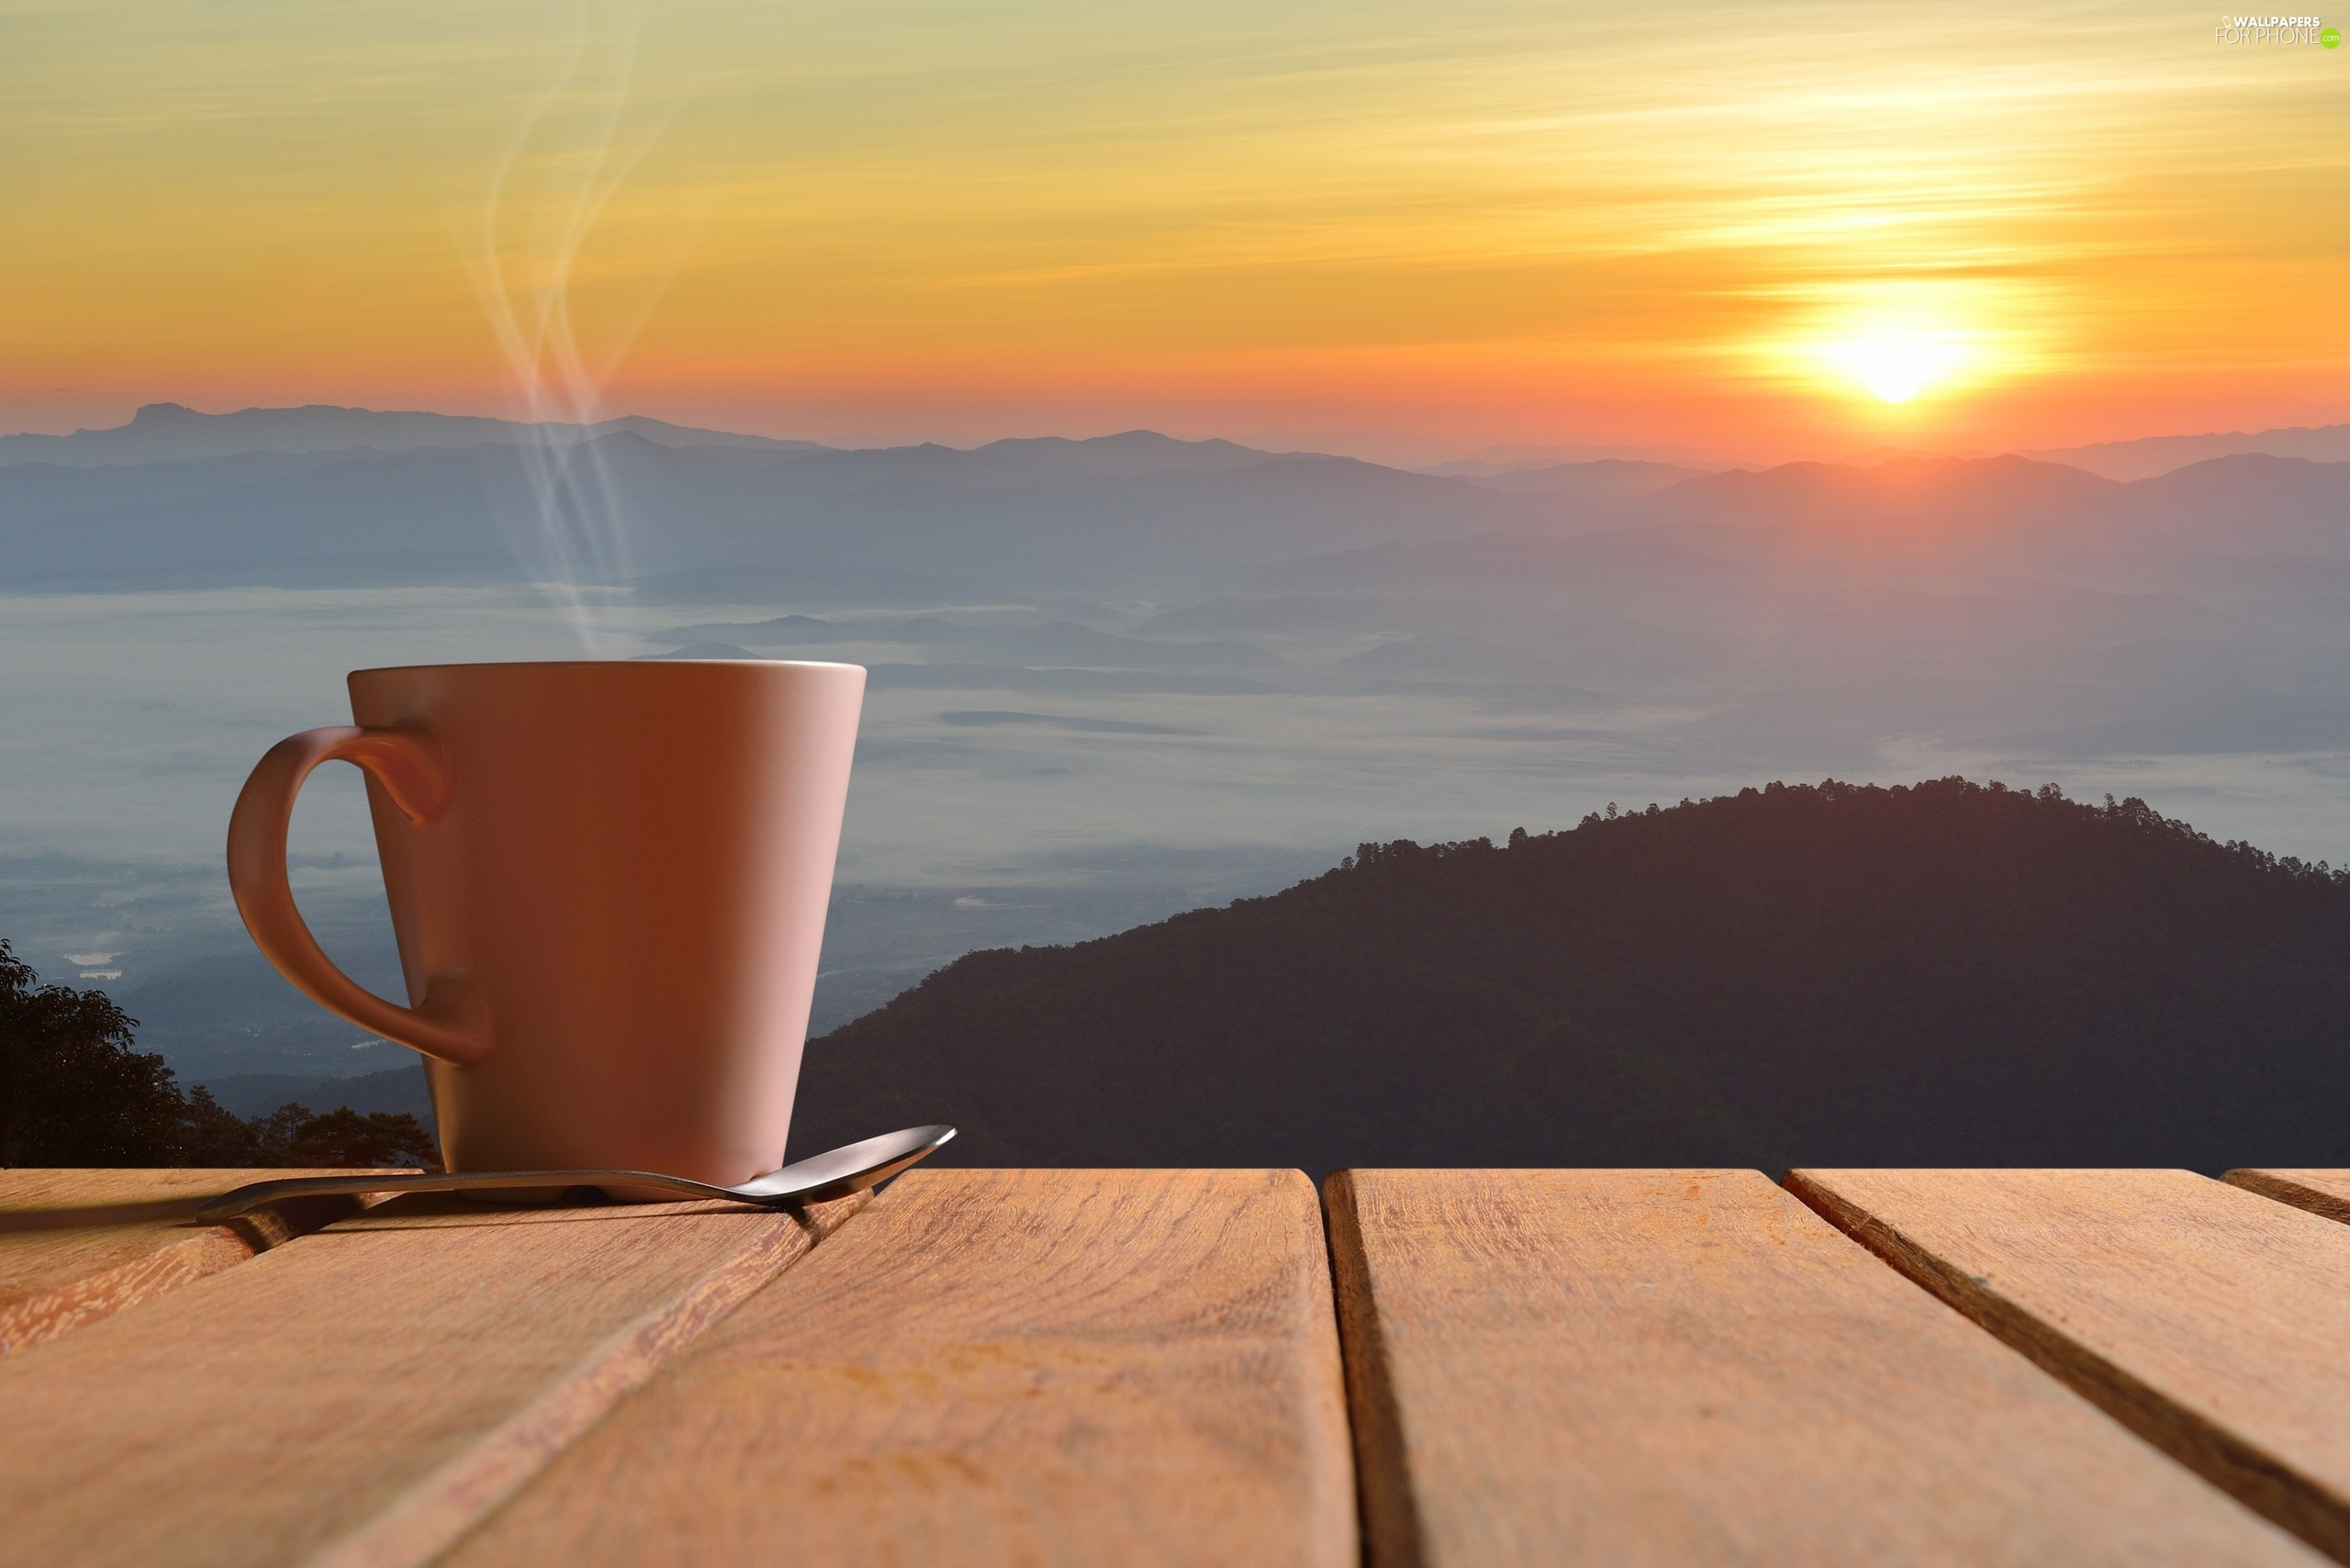 boarding, Steam, Mountains, teaspoon, Cup, landscape, Great Sunsets